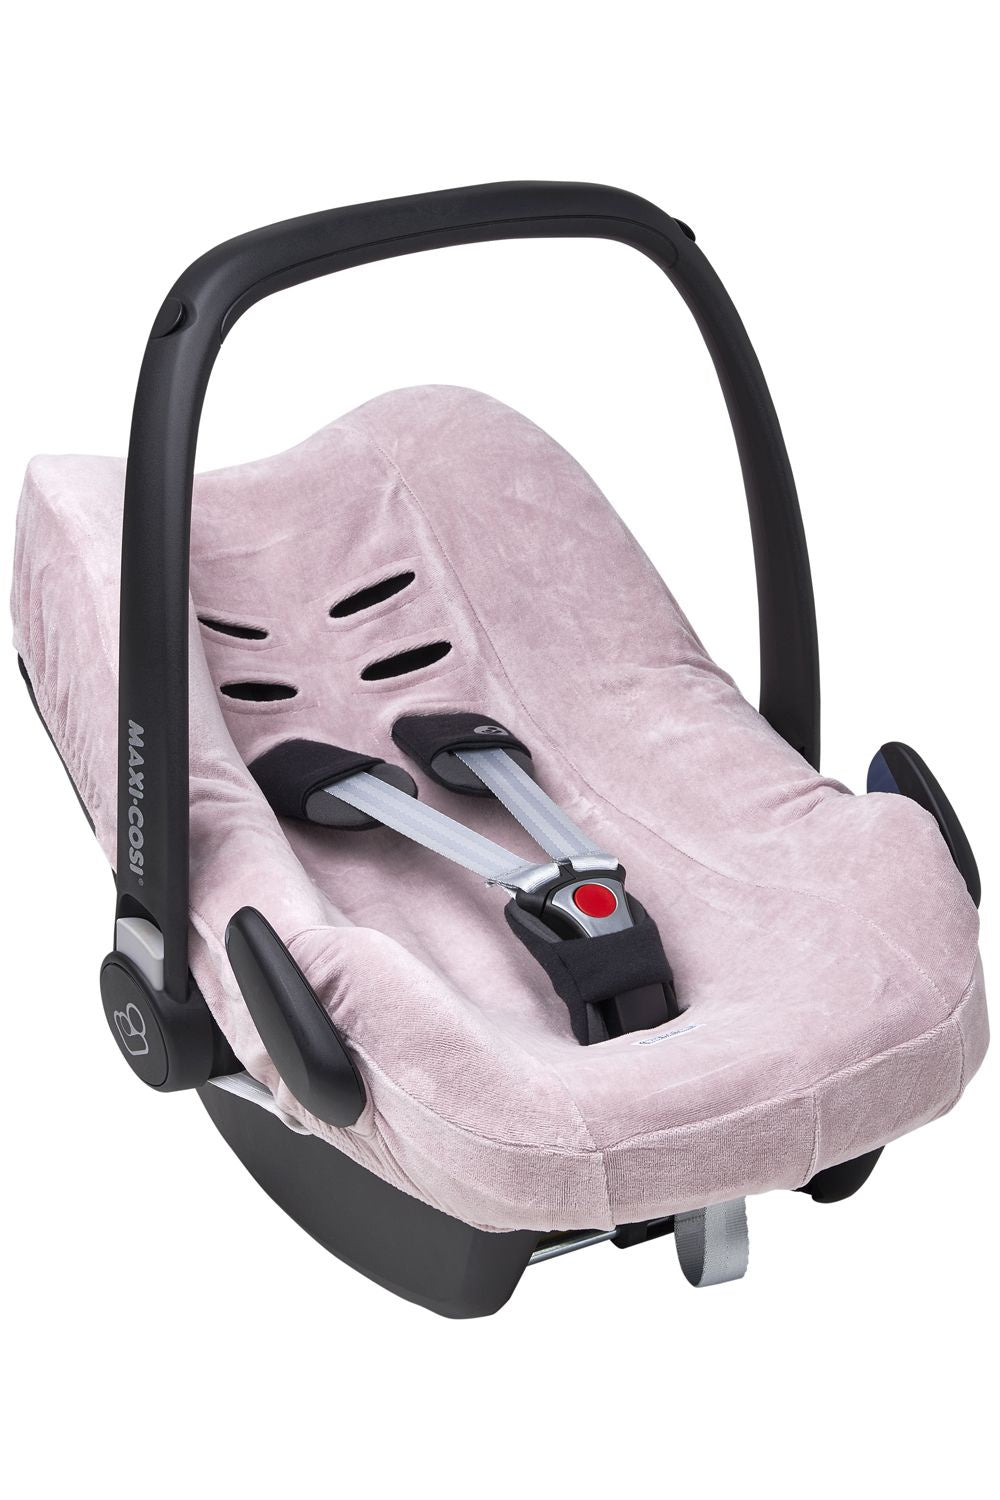 Carseat protector Velvet Group 1